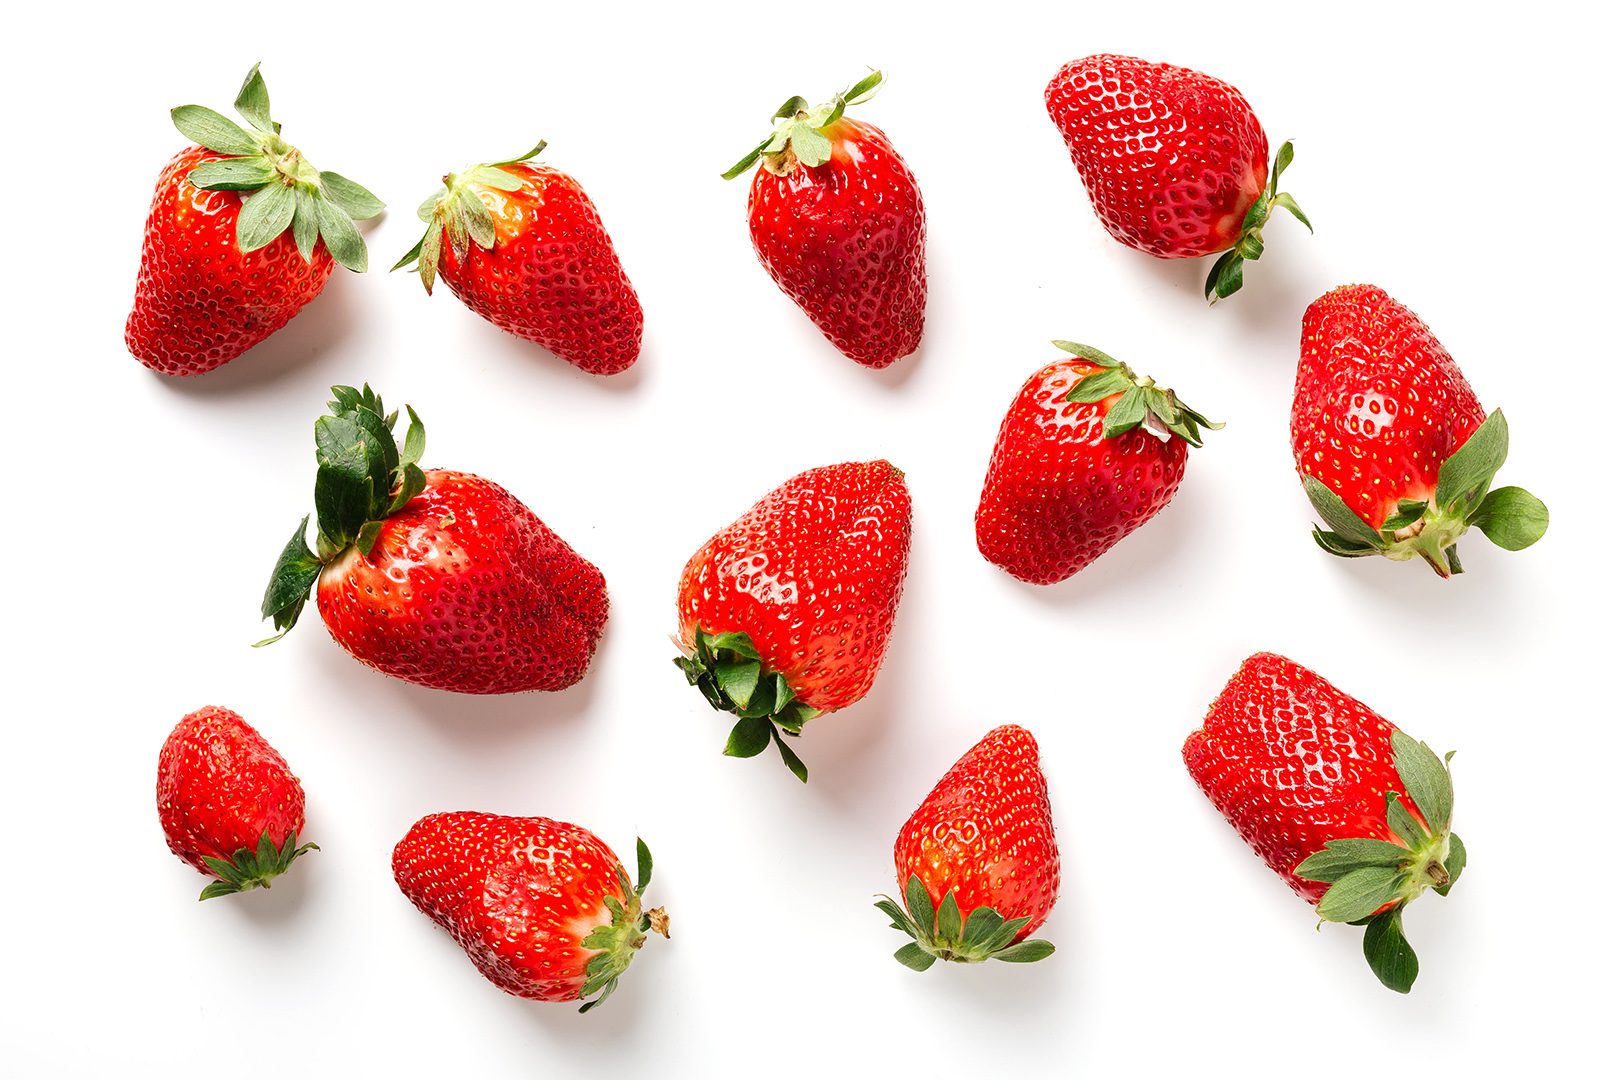 Imperfect Strawberries